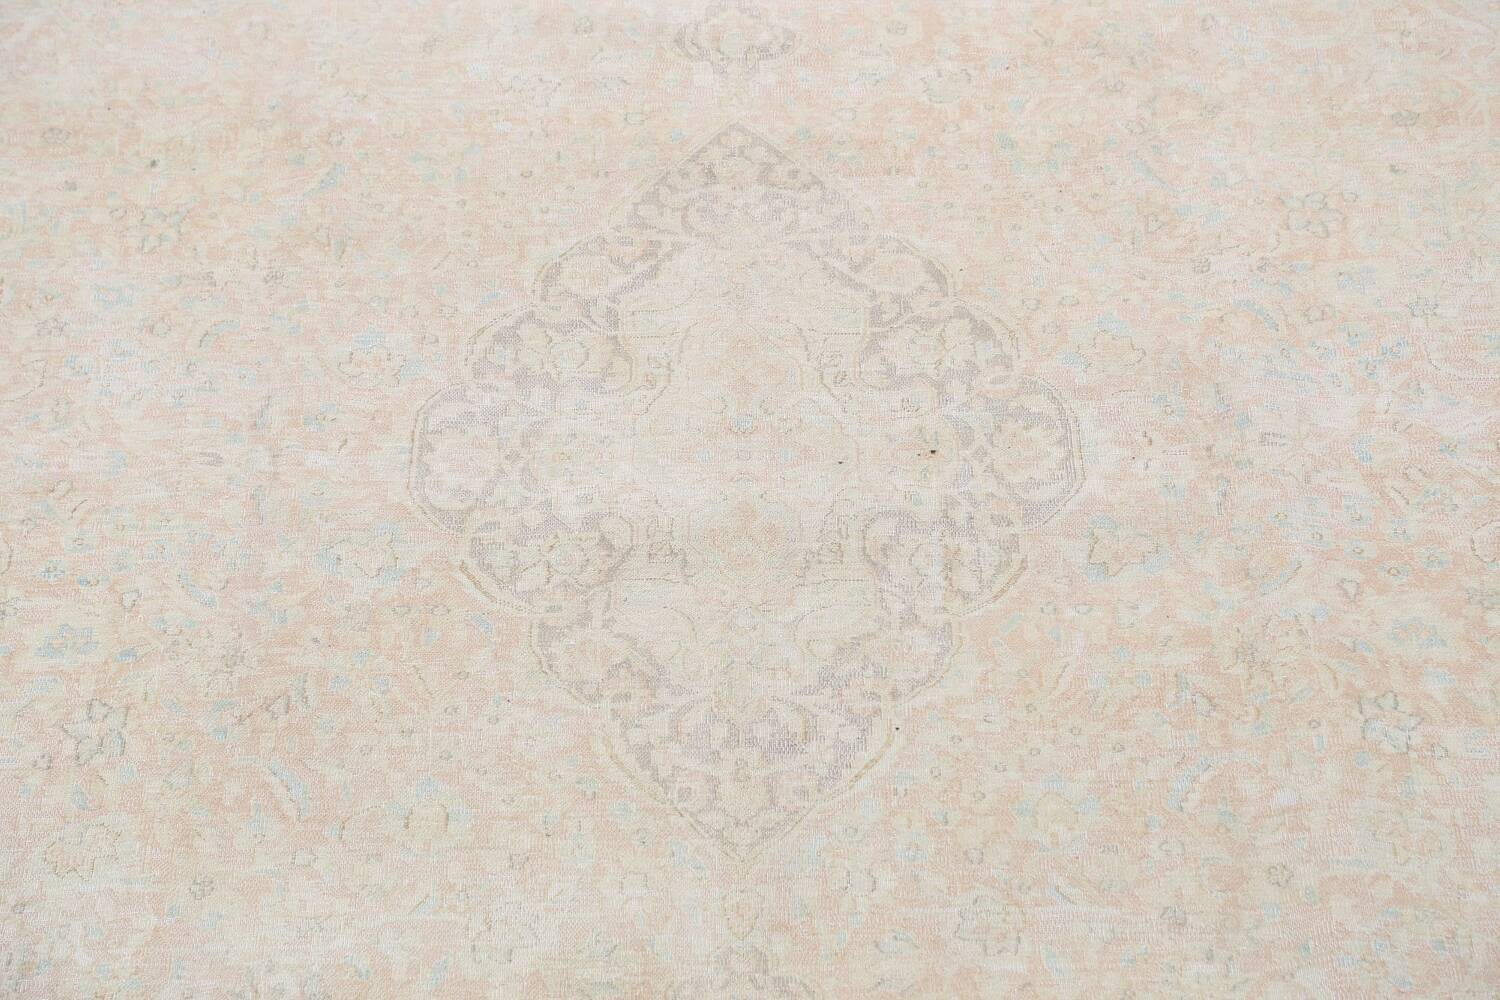 Antique Muted Distressed Kerman Persian Area Rug 10x12 image 4